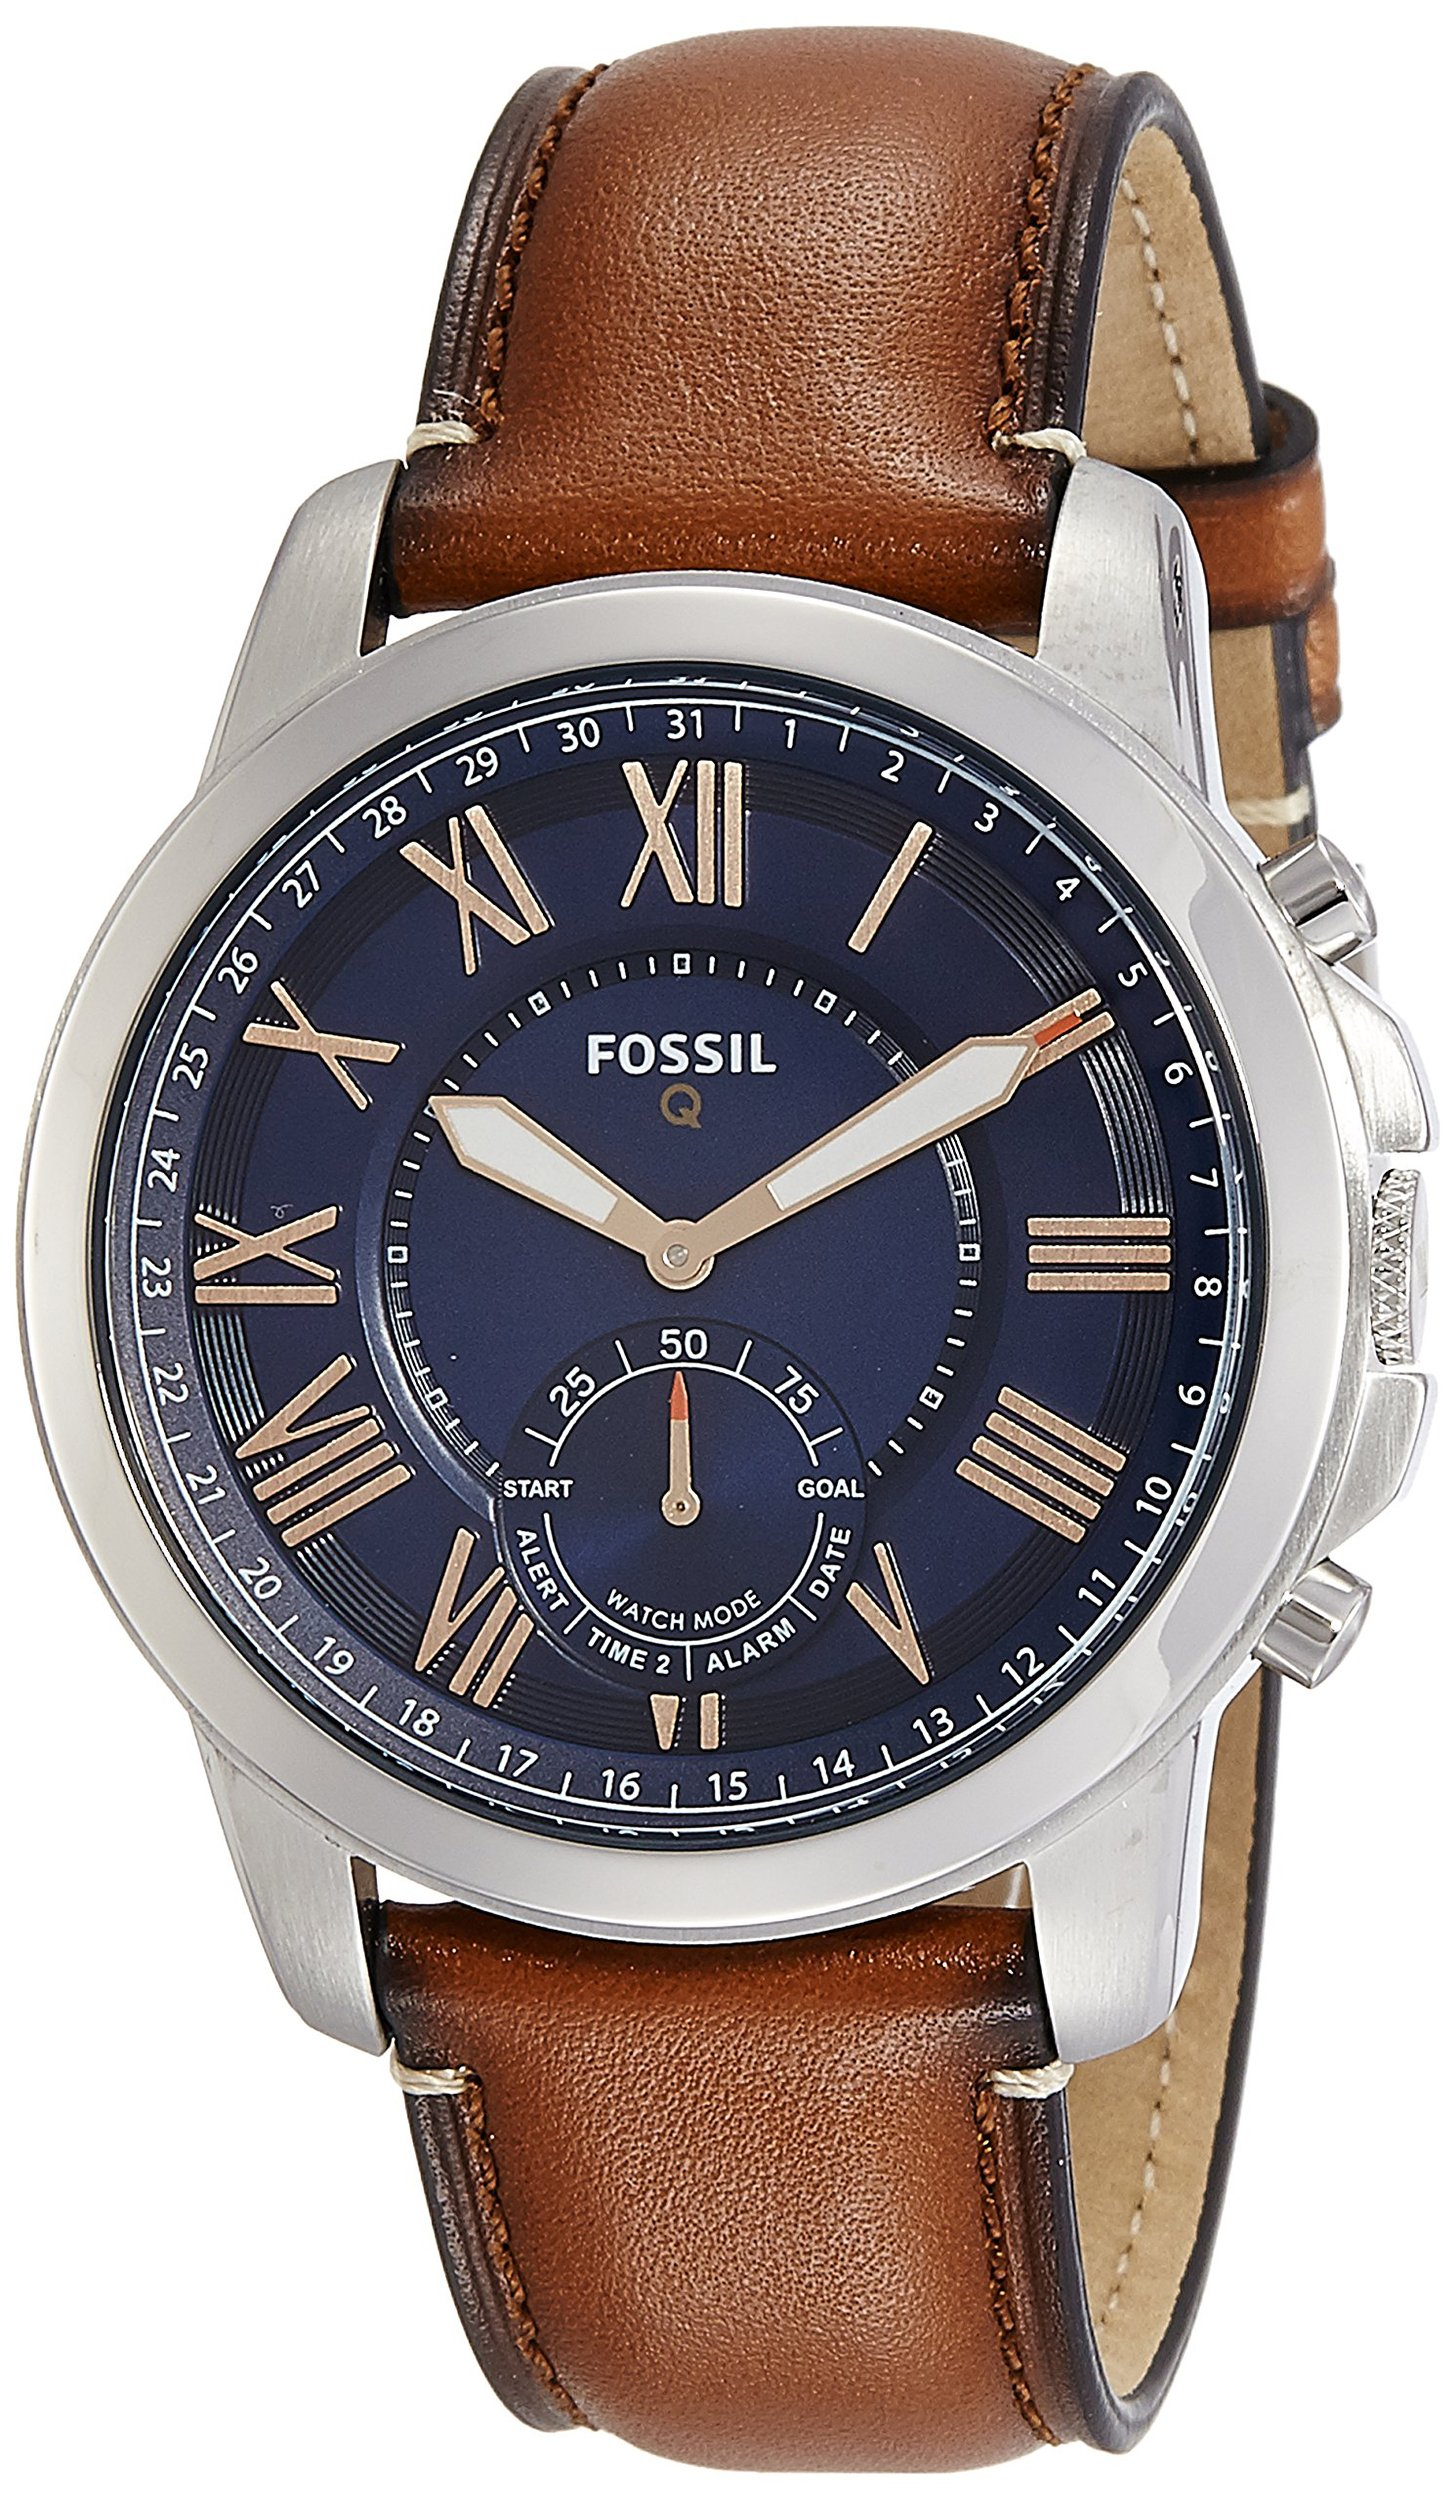 Fossil Q Men's Grant Stainless Steel and Leather Hybrid Smartwatch, Color: Silver-Tone, Brown (Model: FTW1122) by Fossil